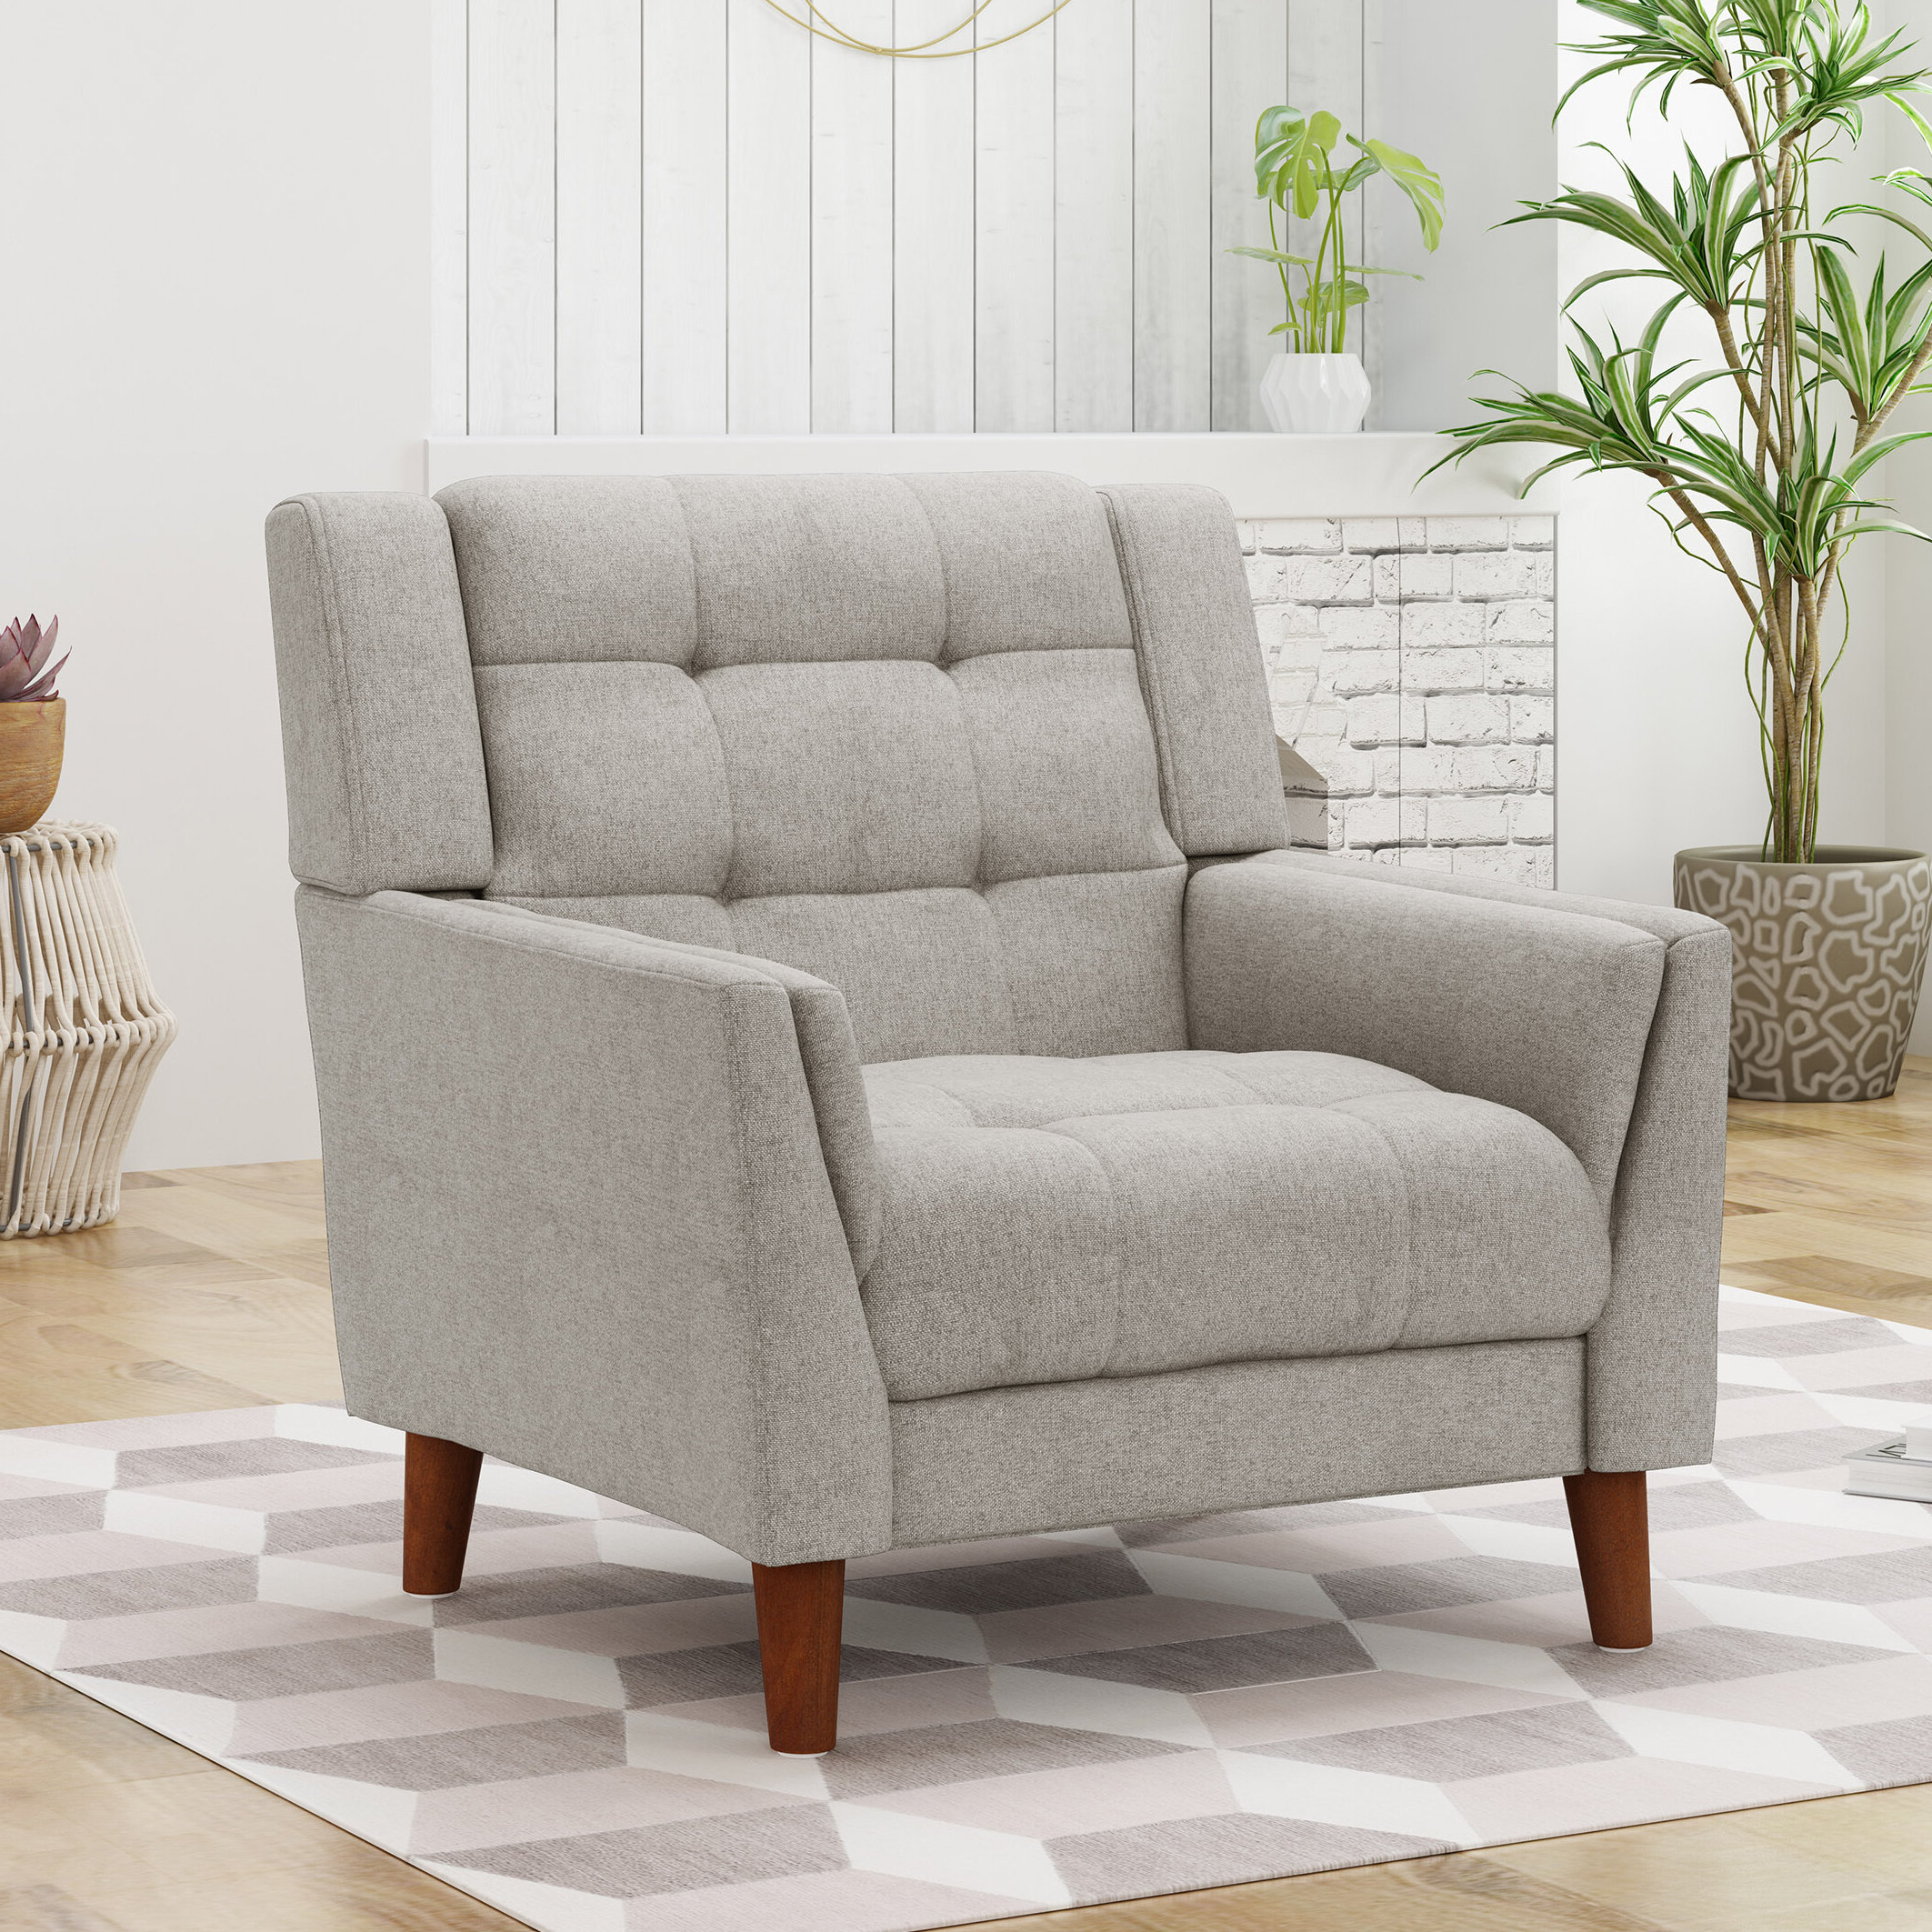 [%accent Chairs | Up To 60% Off Through 01/05 In Popular Bernardston Armchairs|bernardston Armchairs Pertaining To Recent Accent Chairs | Up To 60% Off Through 01/05|most Popular Bernardston Armchairs In Accent Chairs | Up To 60% Off Through 01/05|fashionable Accent Chairs | Up To 60% Off Through 01/05 Throughout Bernardston Armchairs%] (View 16 of 20)